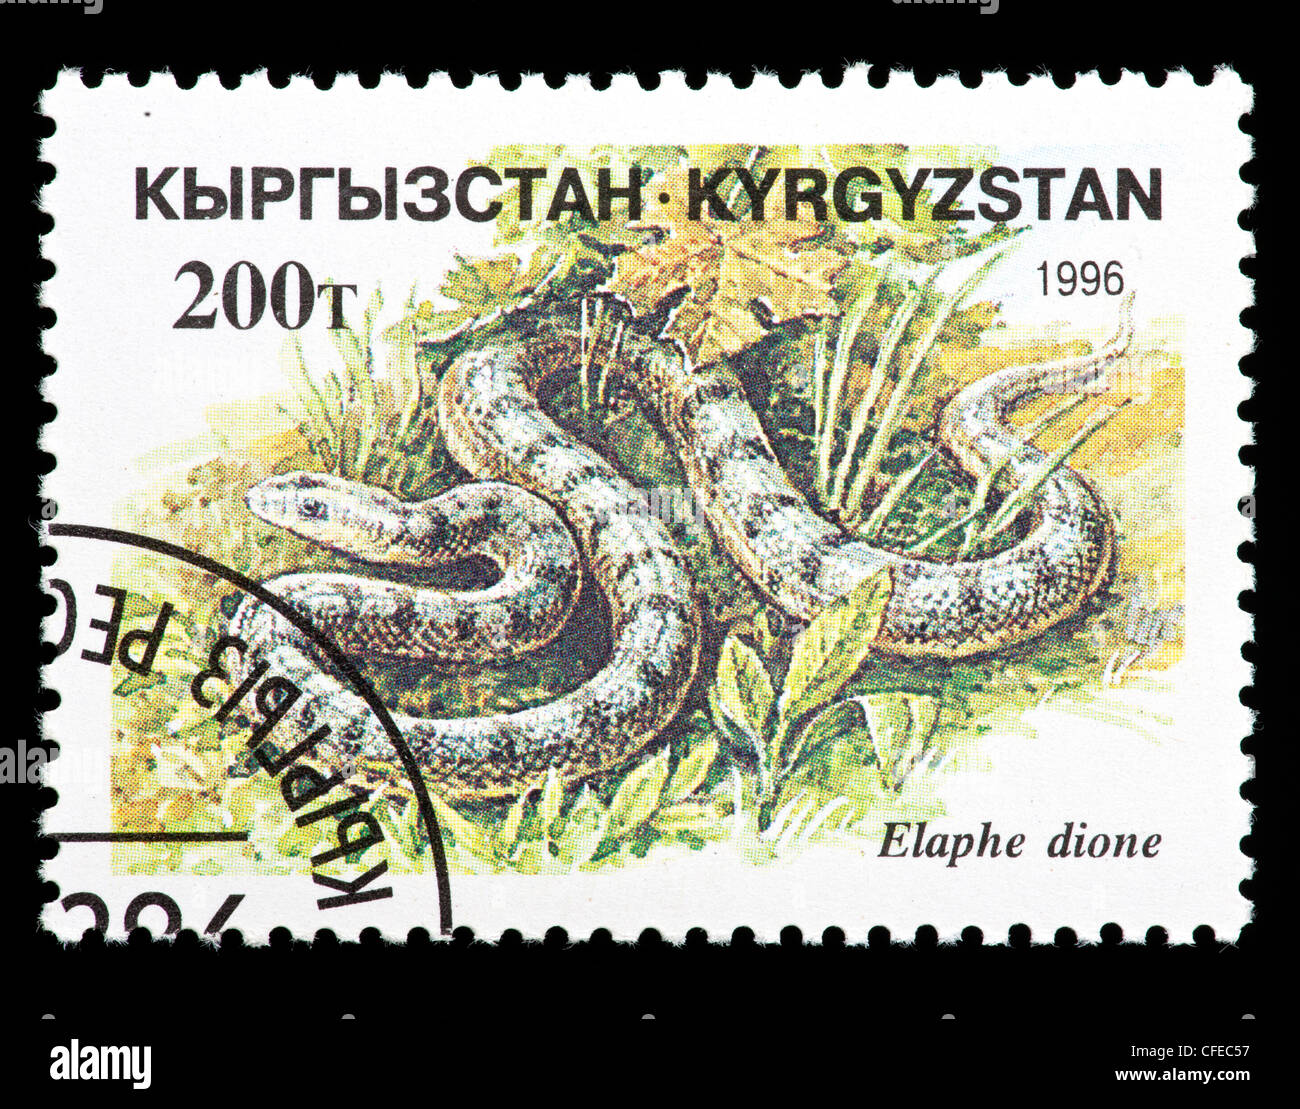 Postage stamp from Kyrgystan depicting Dione Ratsnake or Steppes Ratsnake (Elaphe dione) - Stock Image